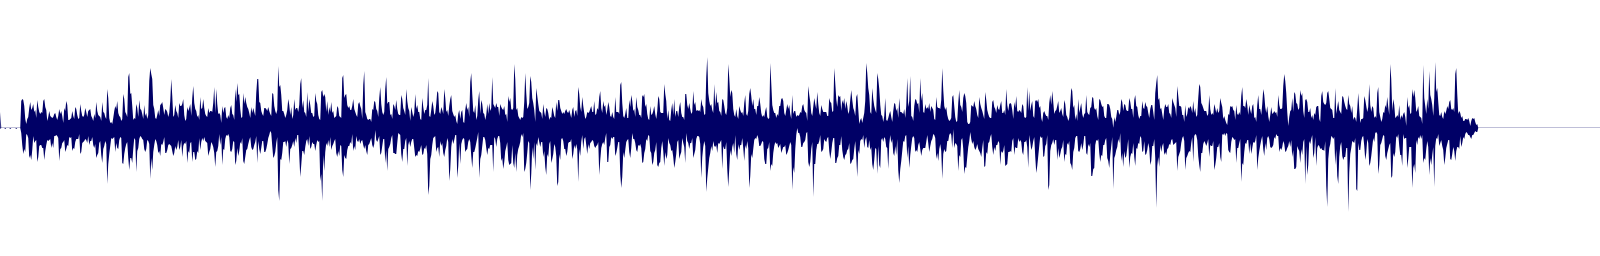 waveform of track #98026